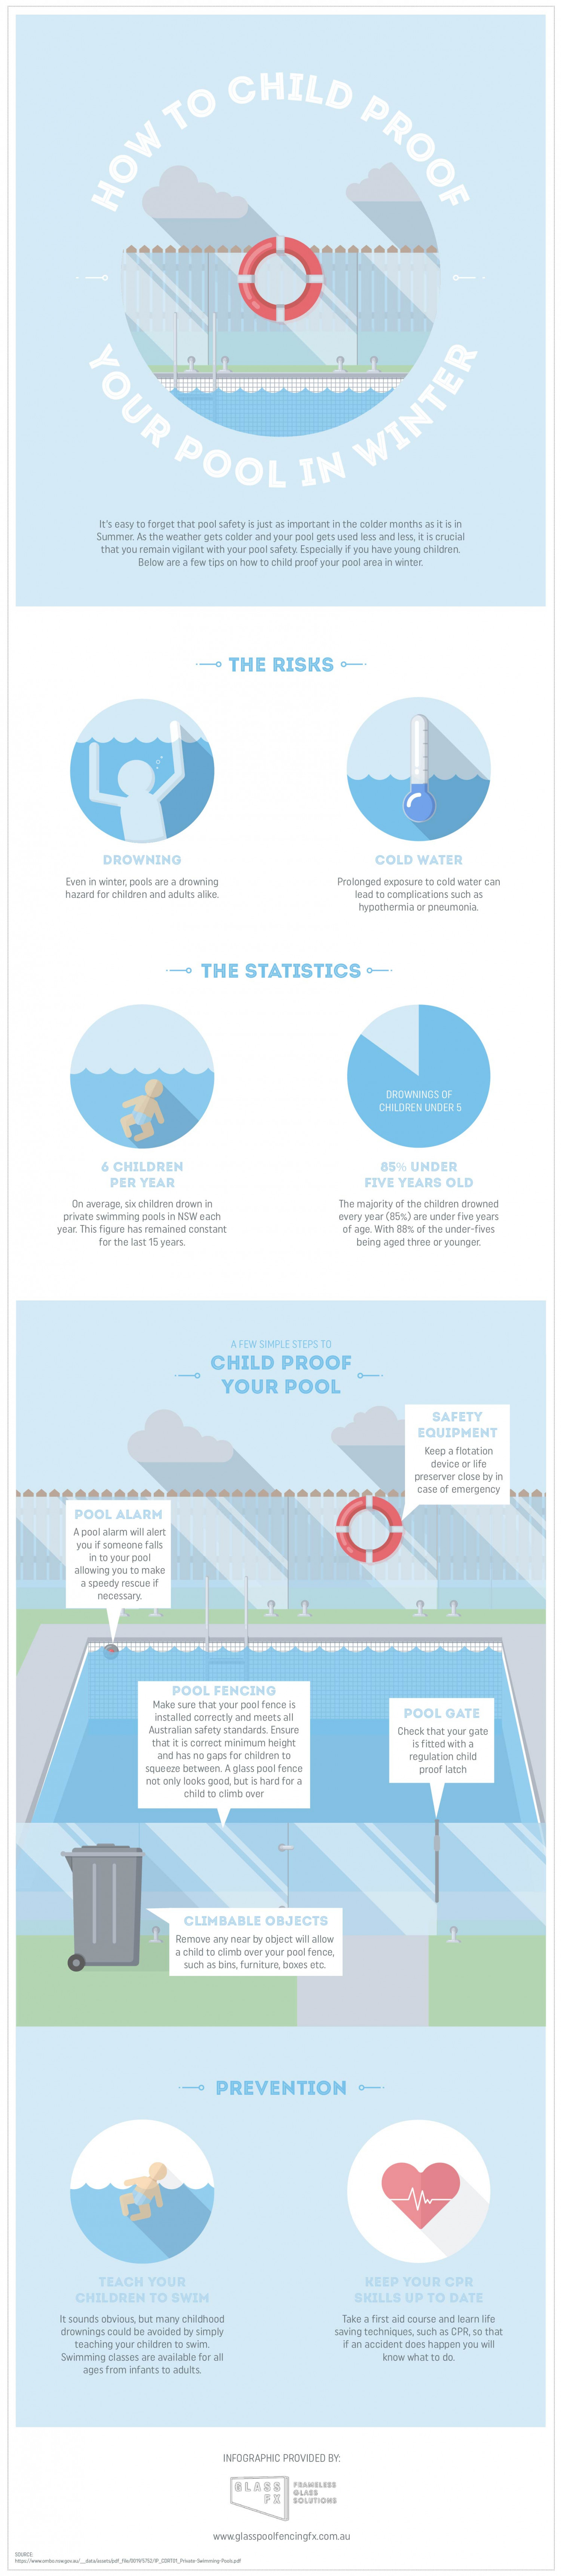 Winter Pool Safety: How To Childproof Your Pool In Winter Infographic